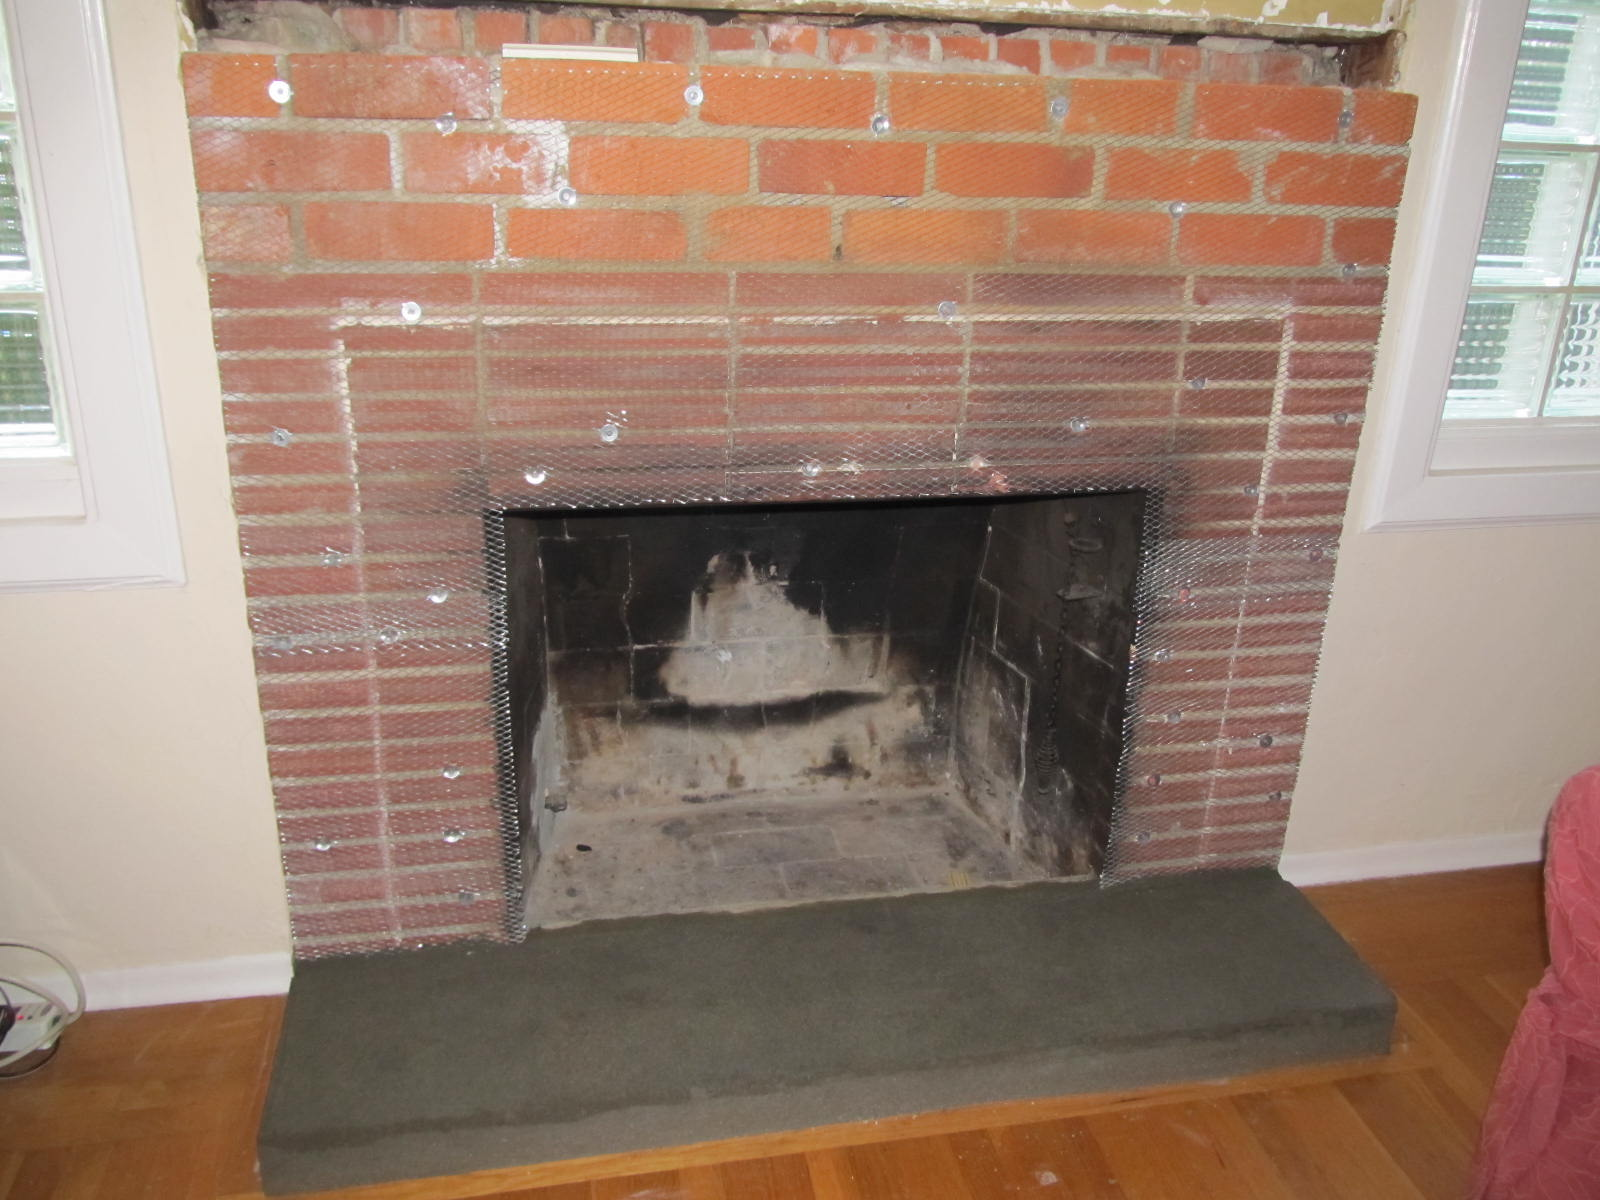 How to build a brick fireplace surround fireplace design ideas - Build contemporary fireplace ideas ...